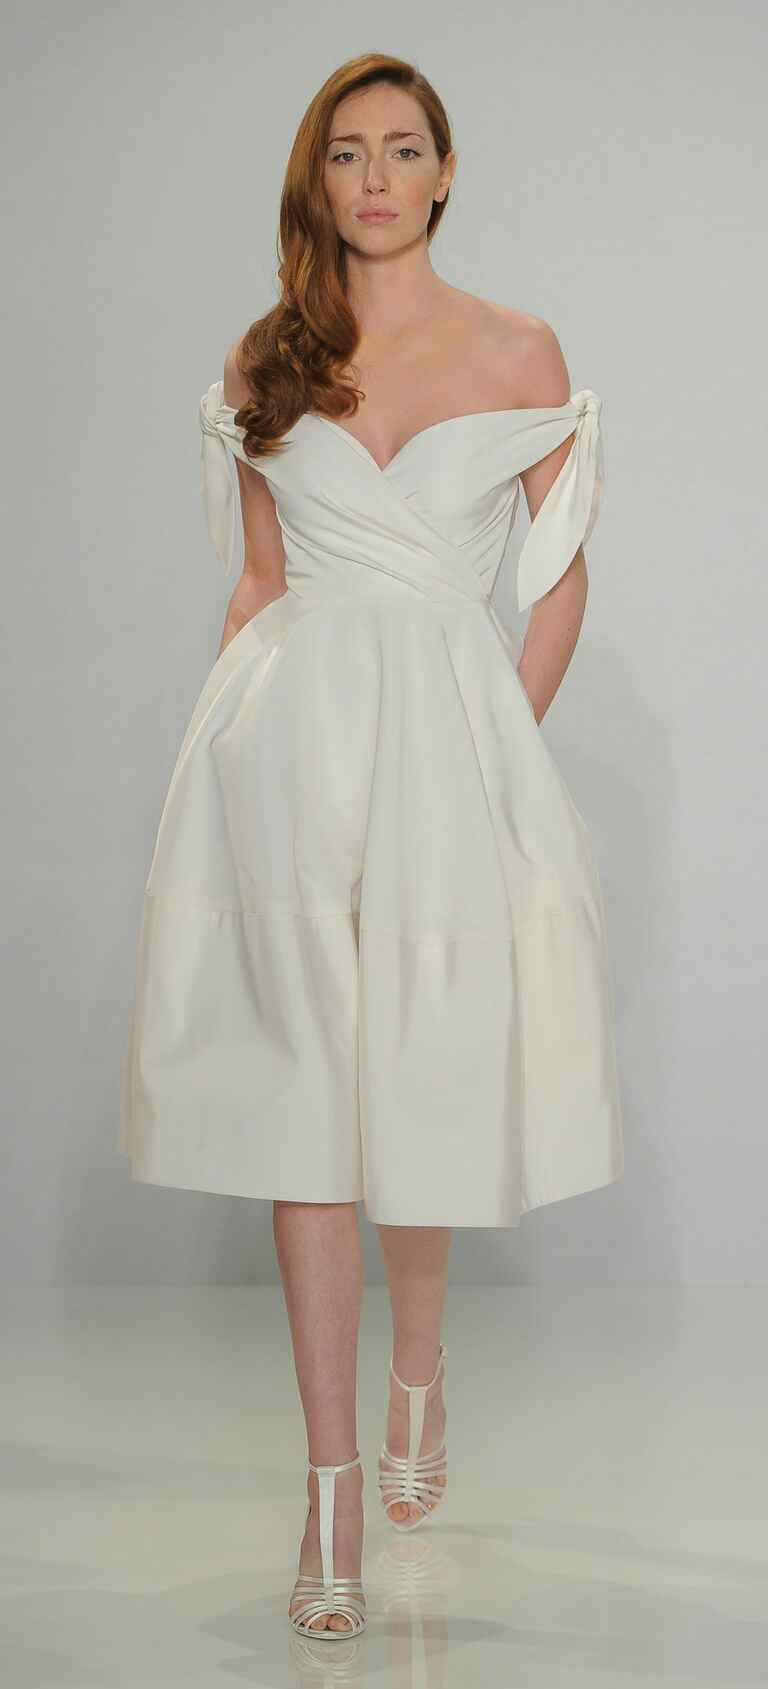 Christian Siriano Spring 2017 off-the-shoulder tie wedding dress